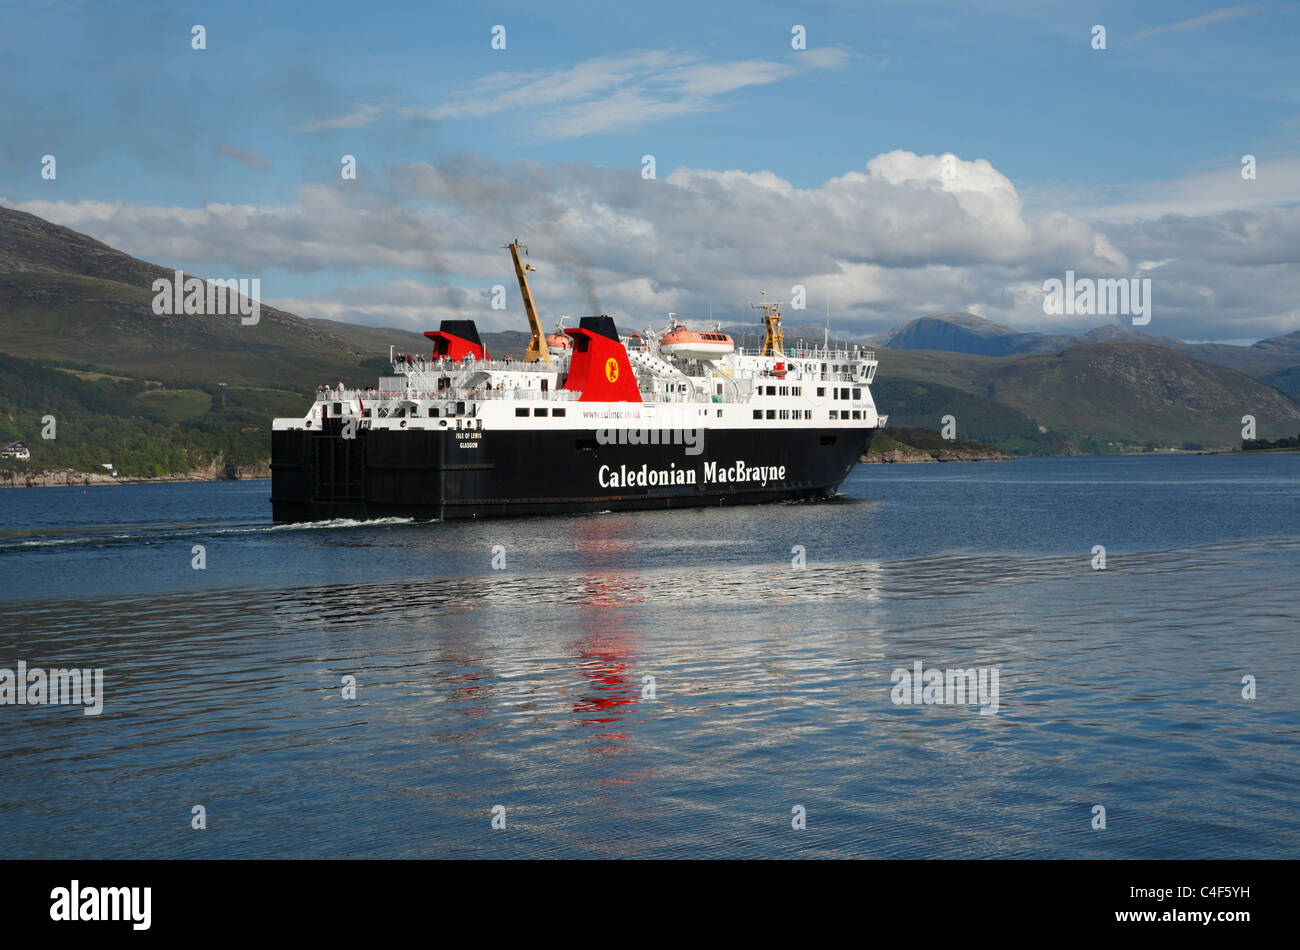 The Caledonian MacBrayne ferry at Ullapool  setting sail with mountains behind. - Stock Image